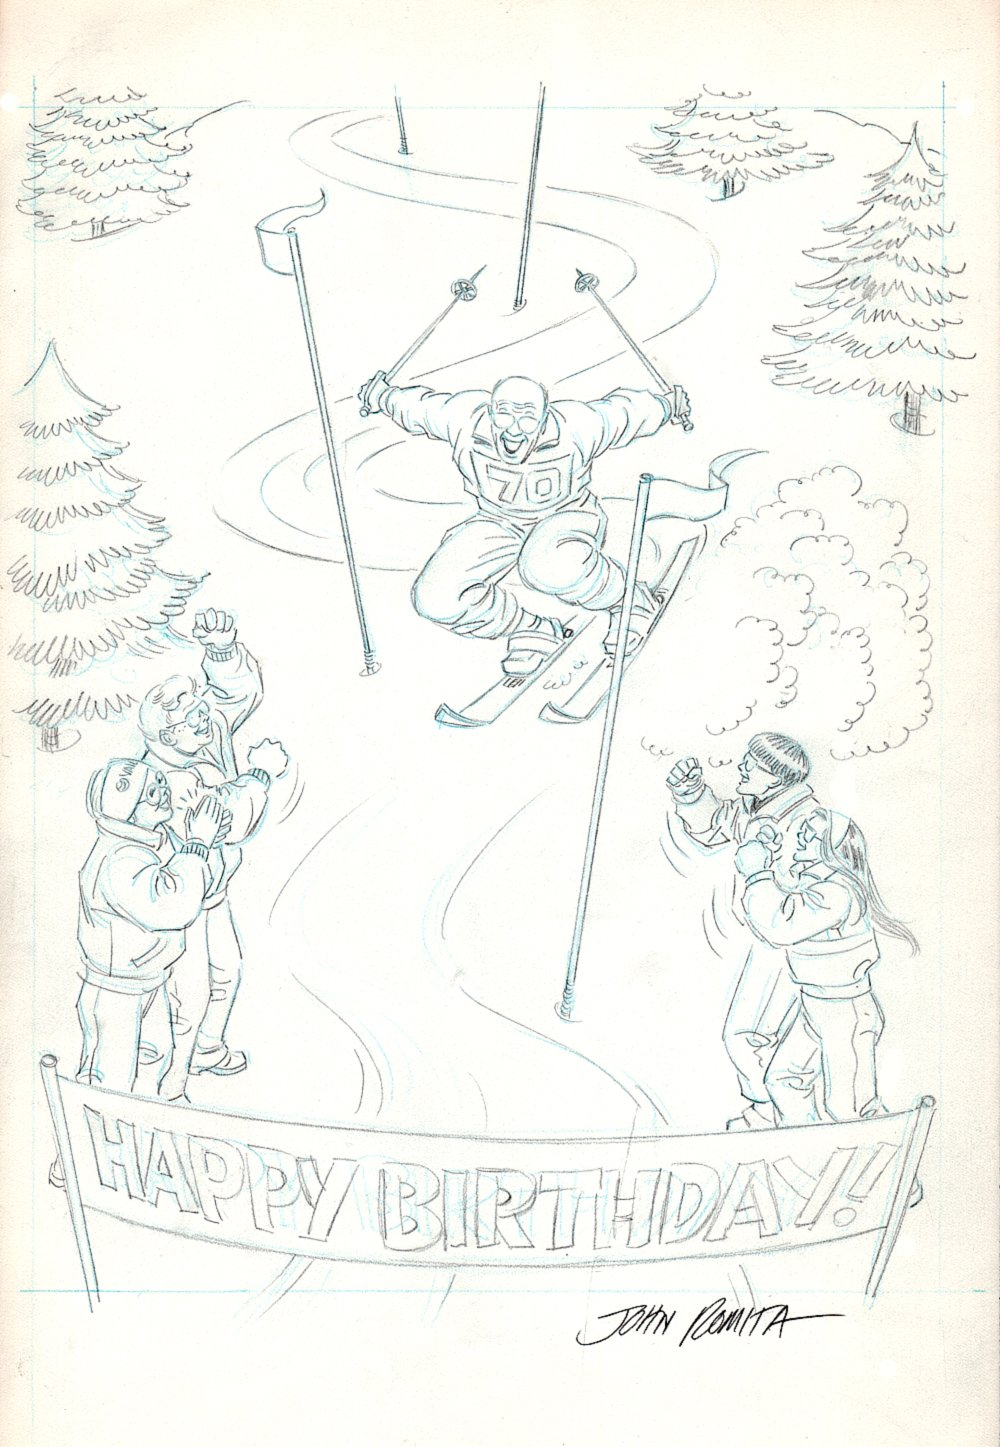 Julie Schwartz 70th Birthday Card Art (SOLD LIVE ON 'DUELING DEALERS OF COMIC ART' EPISODE #11 PODCAST ON 4-7-2021 (RE-WATCH OUR LIVE ART SELLING PODCAST HERE!)